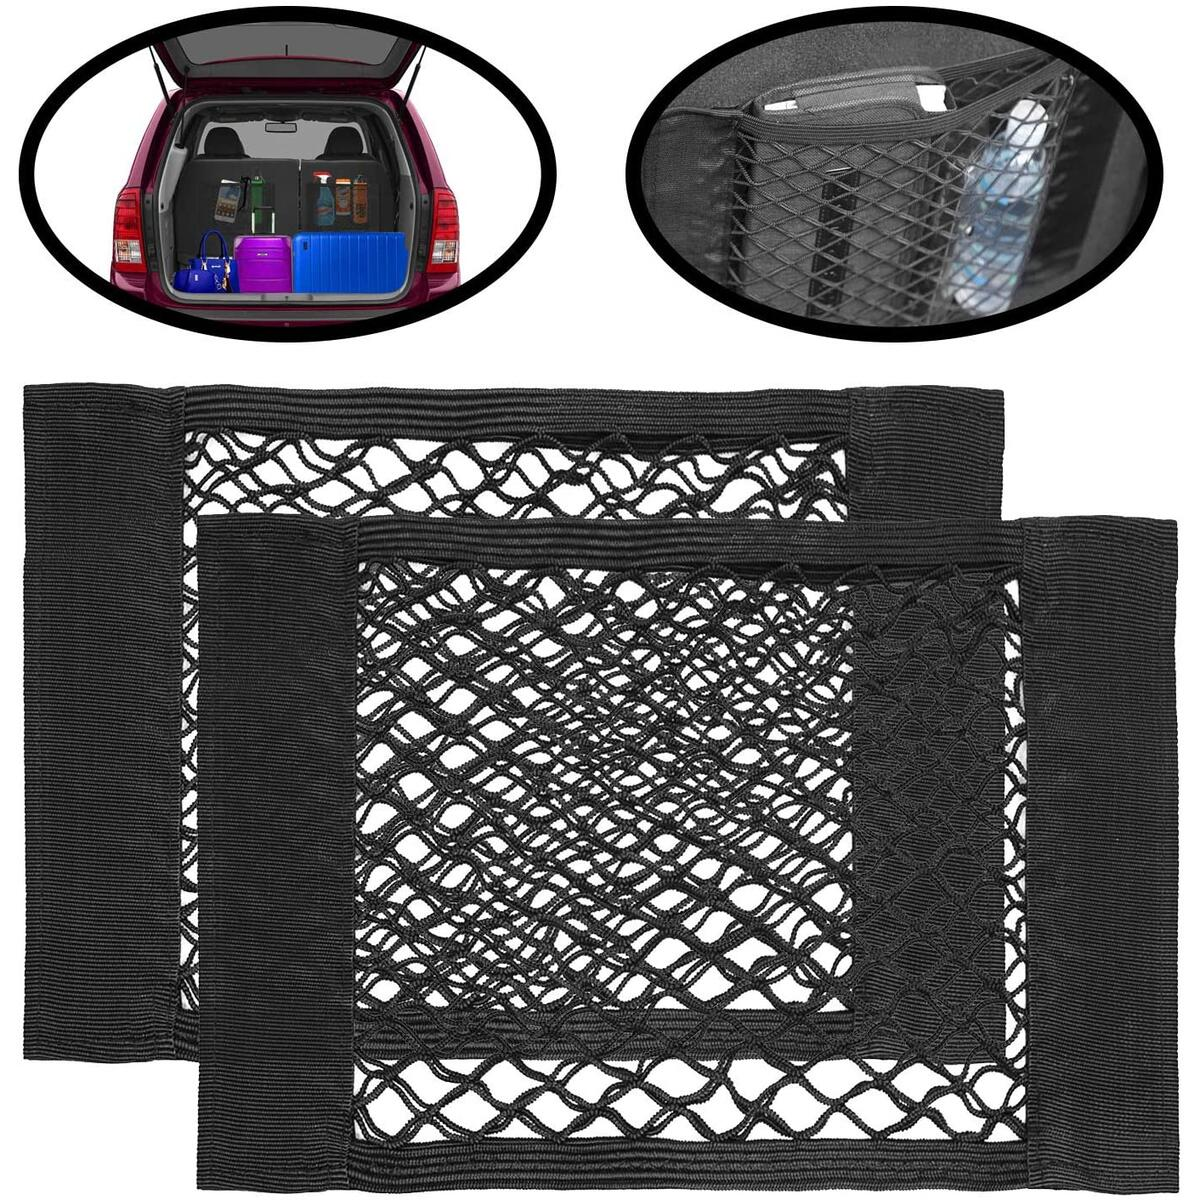 Car Storage Net Pocket Organizer, 2 Pack Mesh Stick On Cargo Storage Pouch, Bungee Netting Side Wall Sticker, Stick On String Bag For Trunk, Seat Back, Suitcases, Elastic Organizer Net Pocket